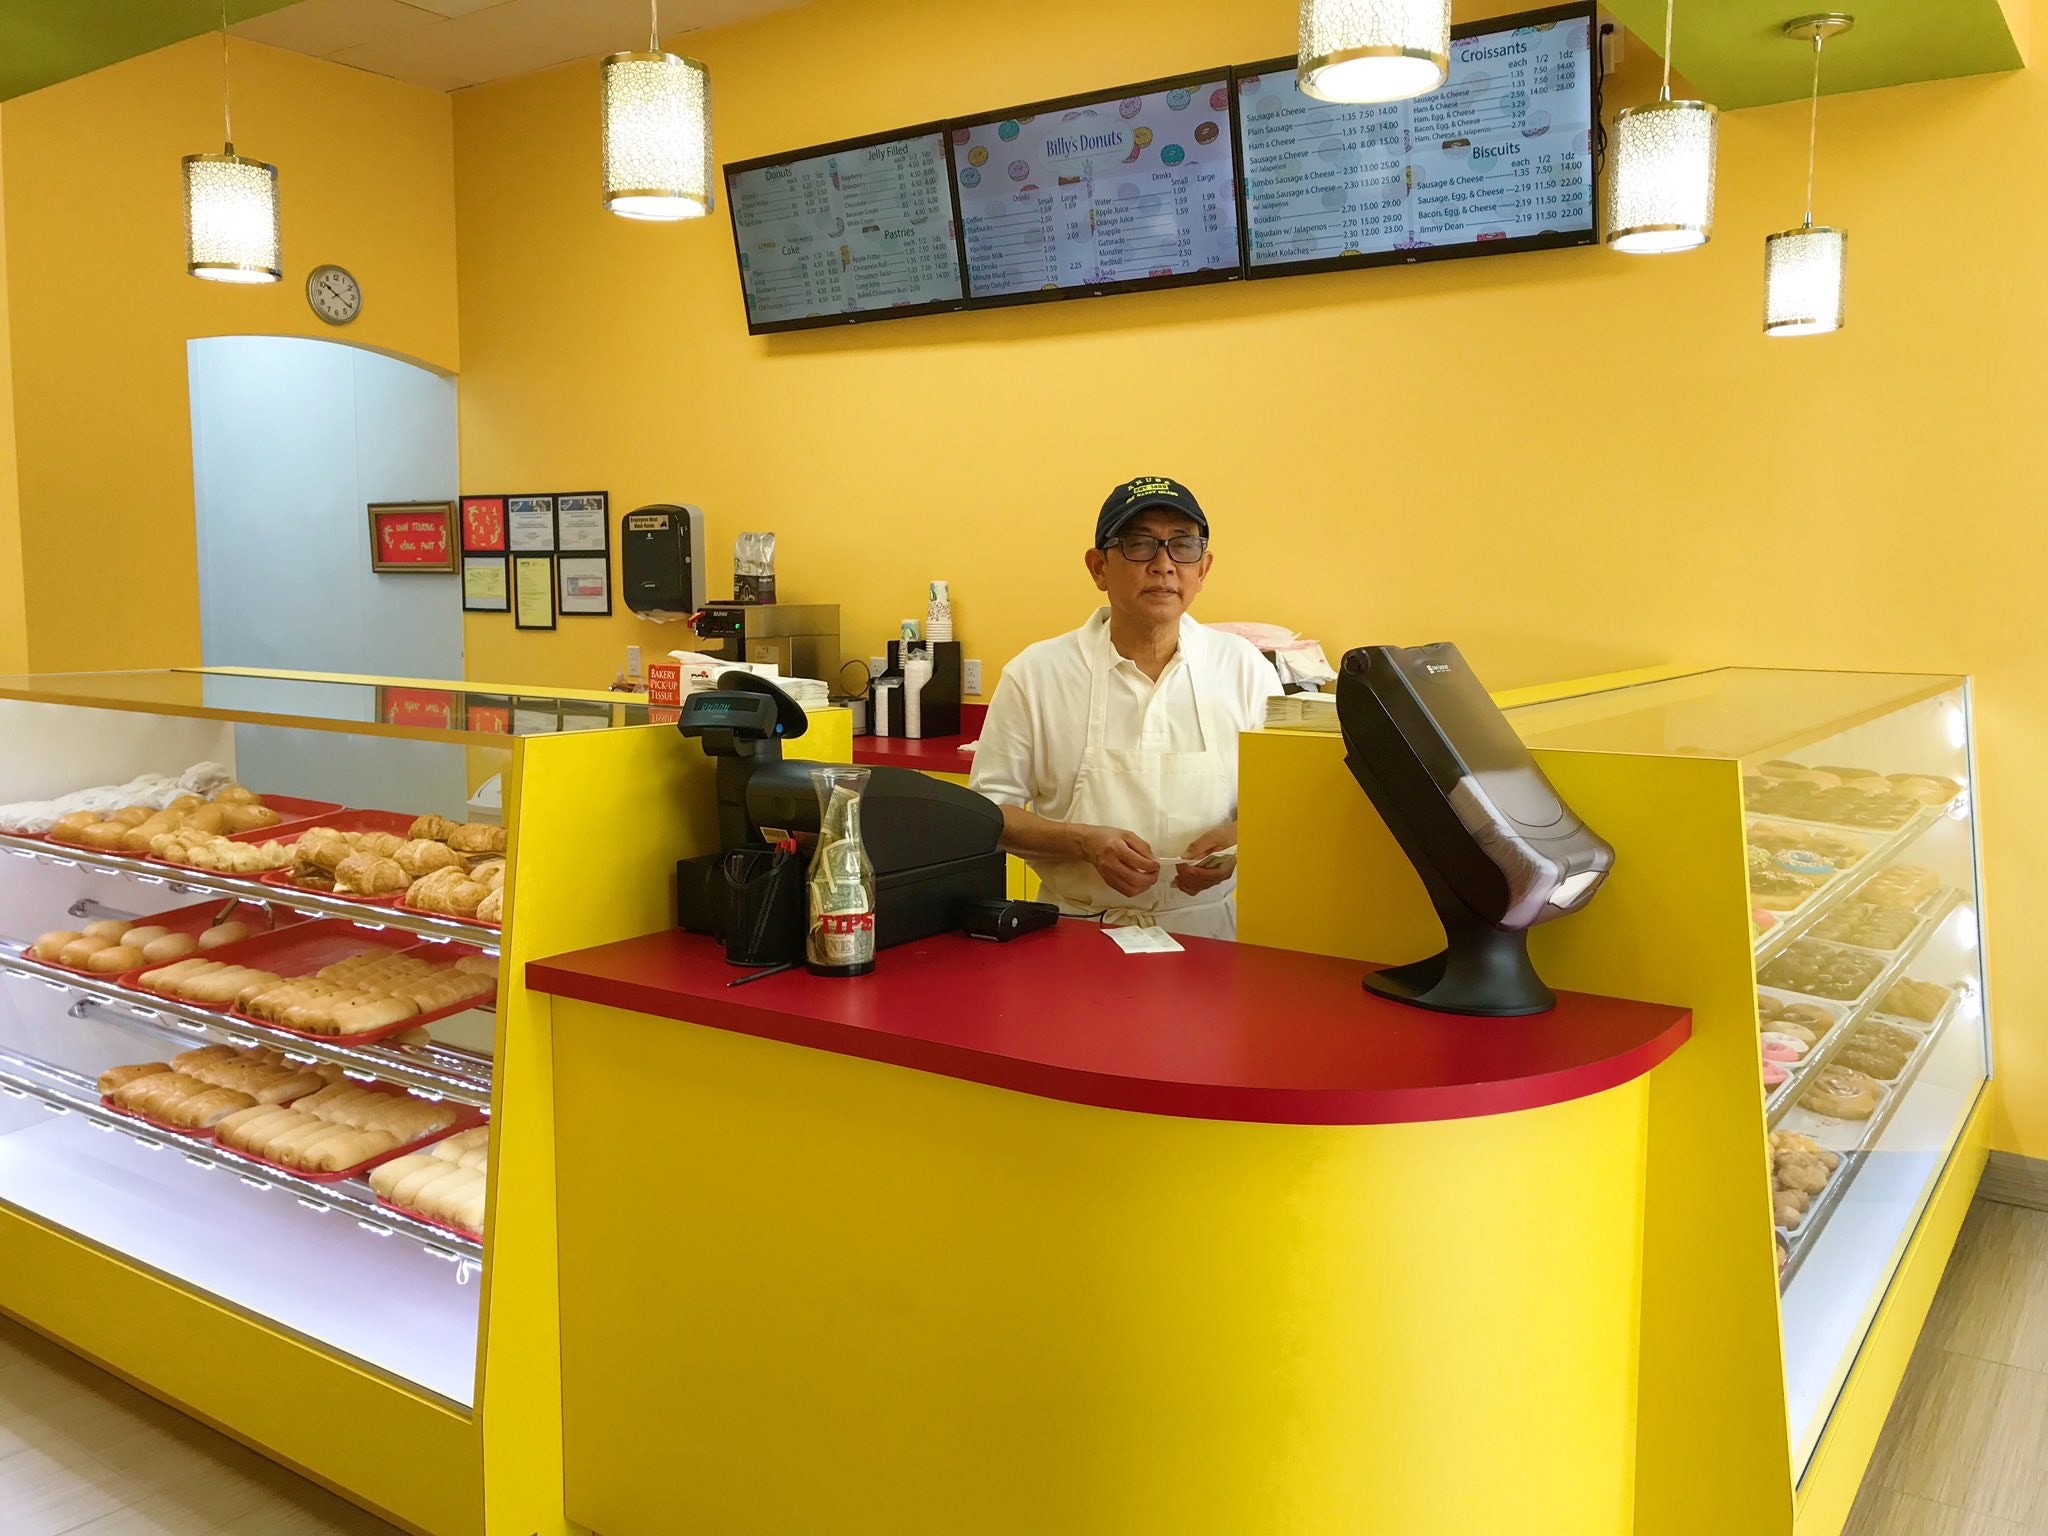 What ever happened to the struggling doughnut shop that went viral on Twitter?